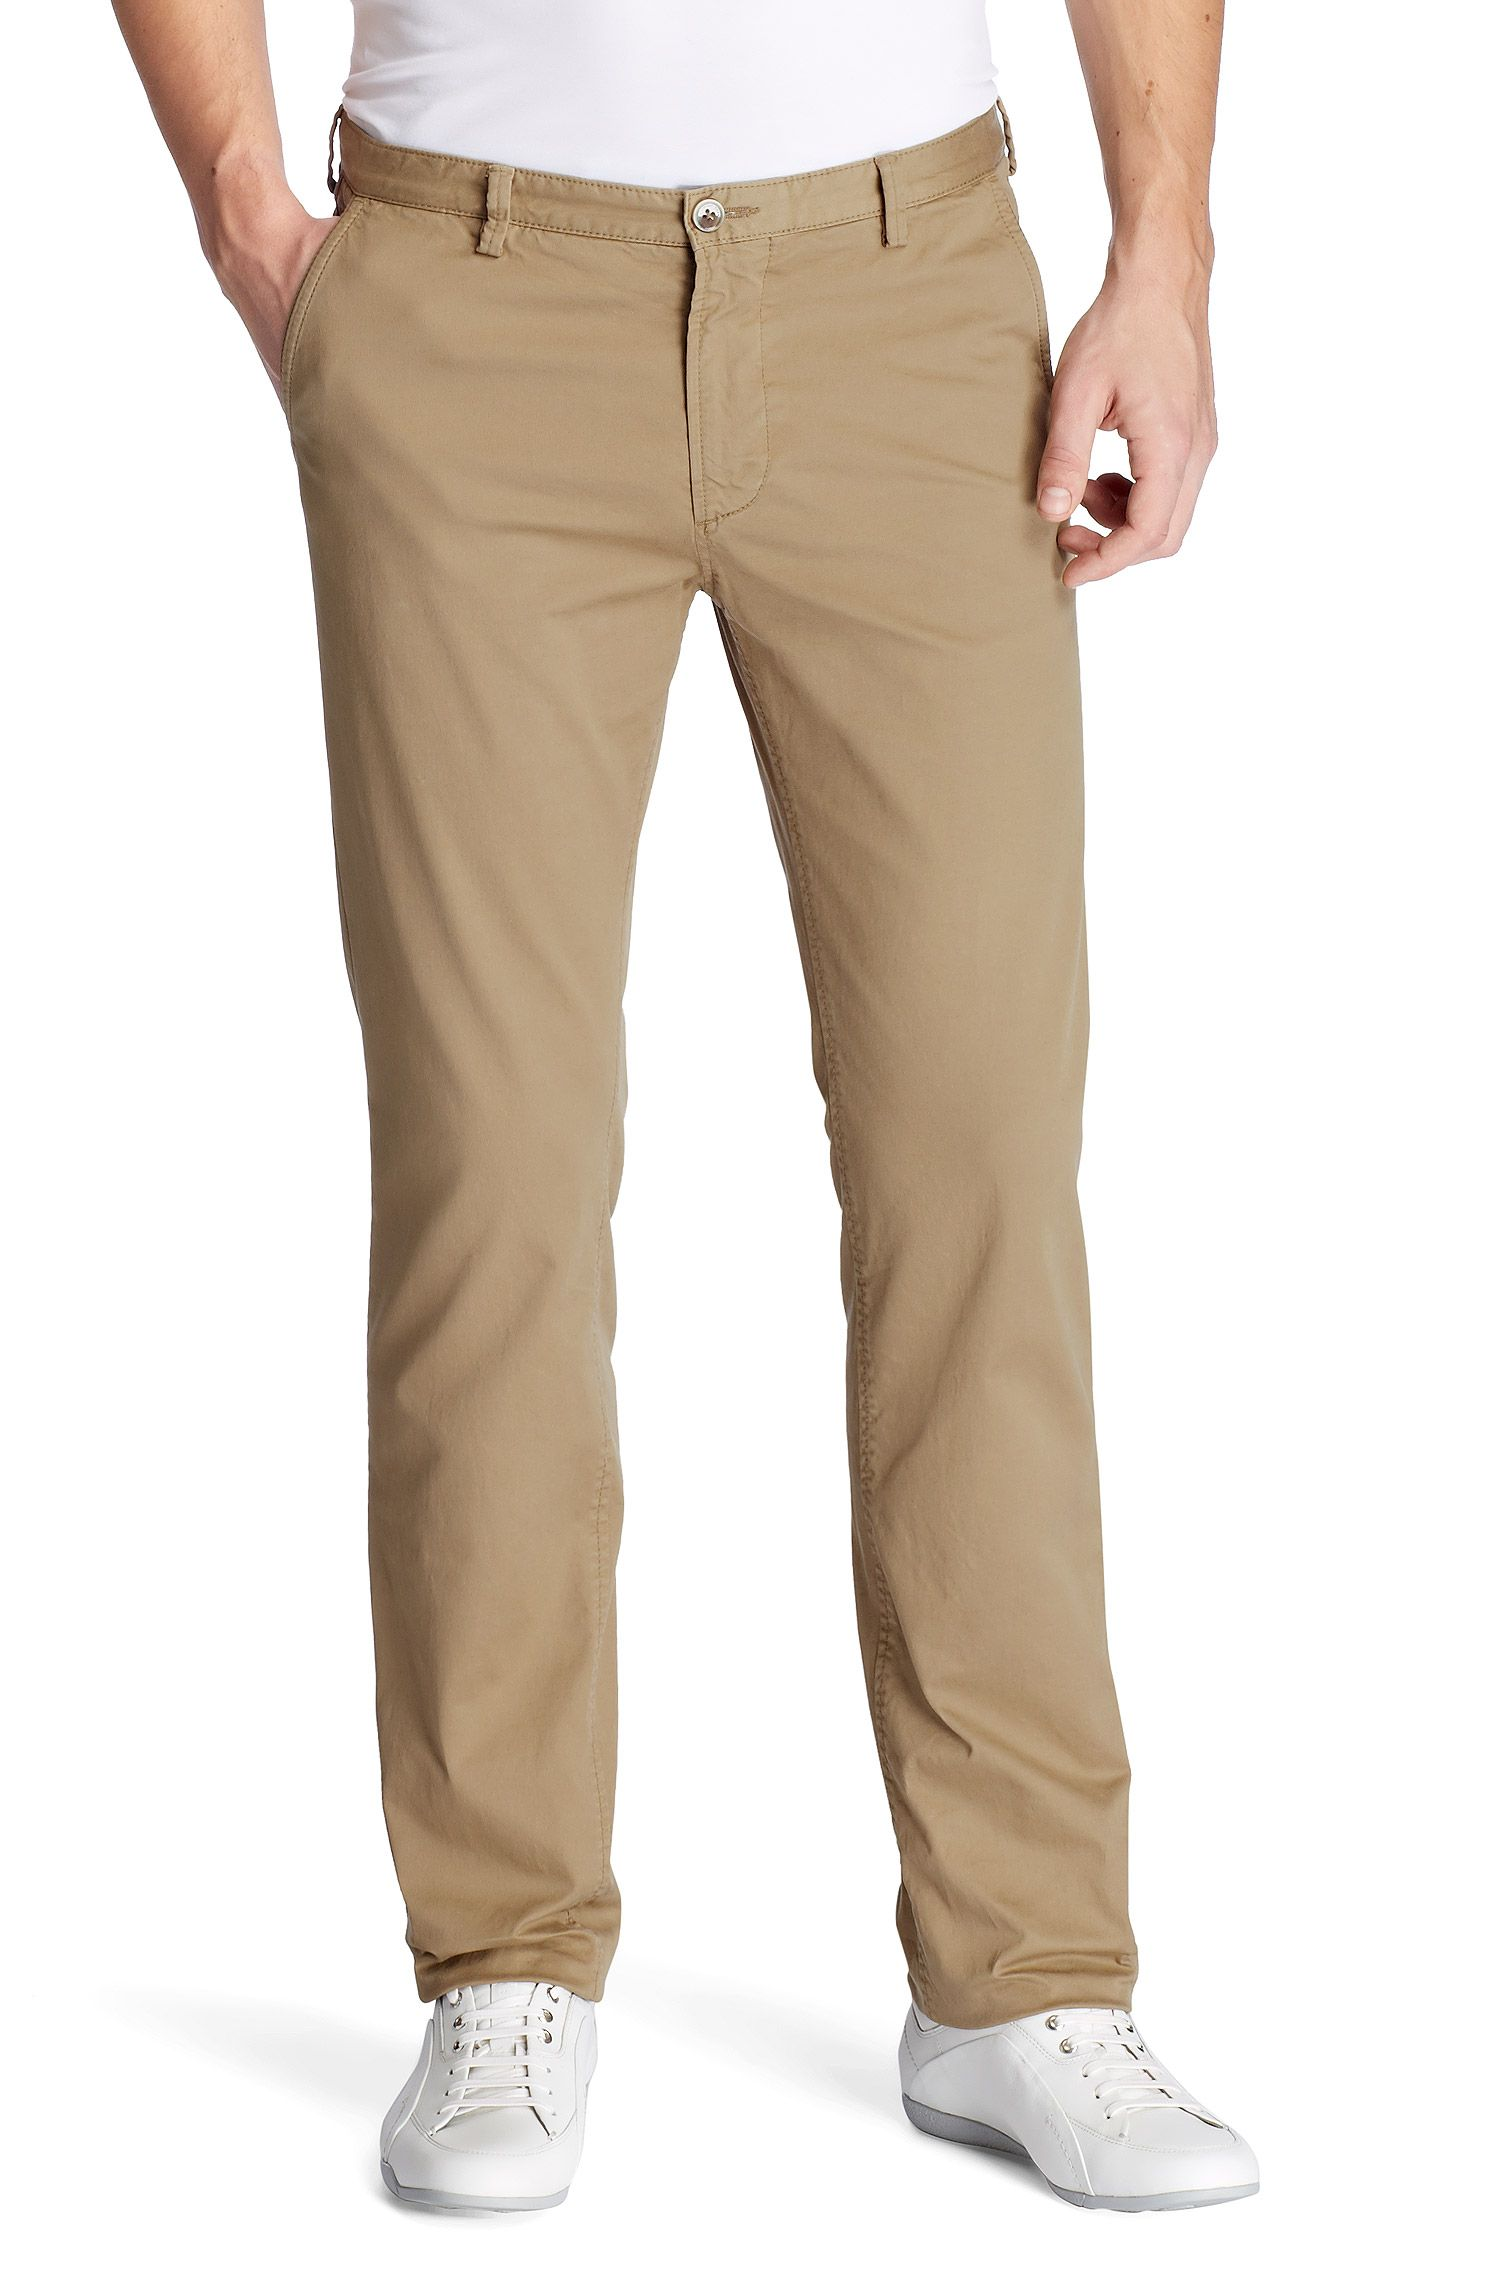 Slim-Fit Freizeit-Hose ´Rice-1-D modern essential`, Beige